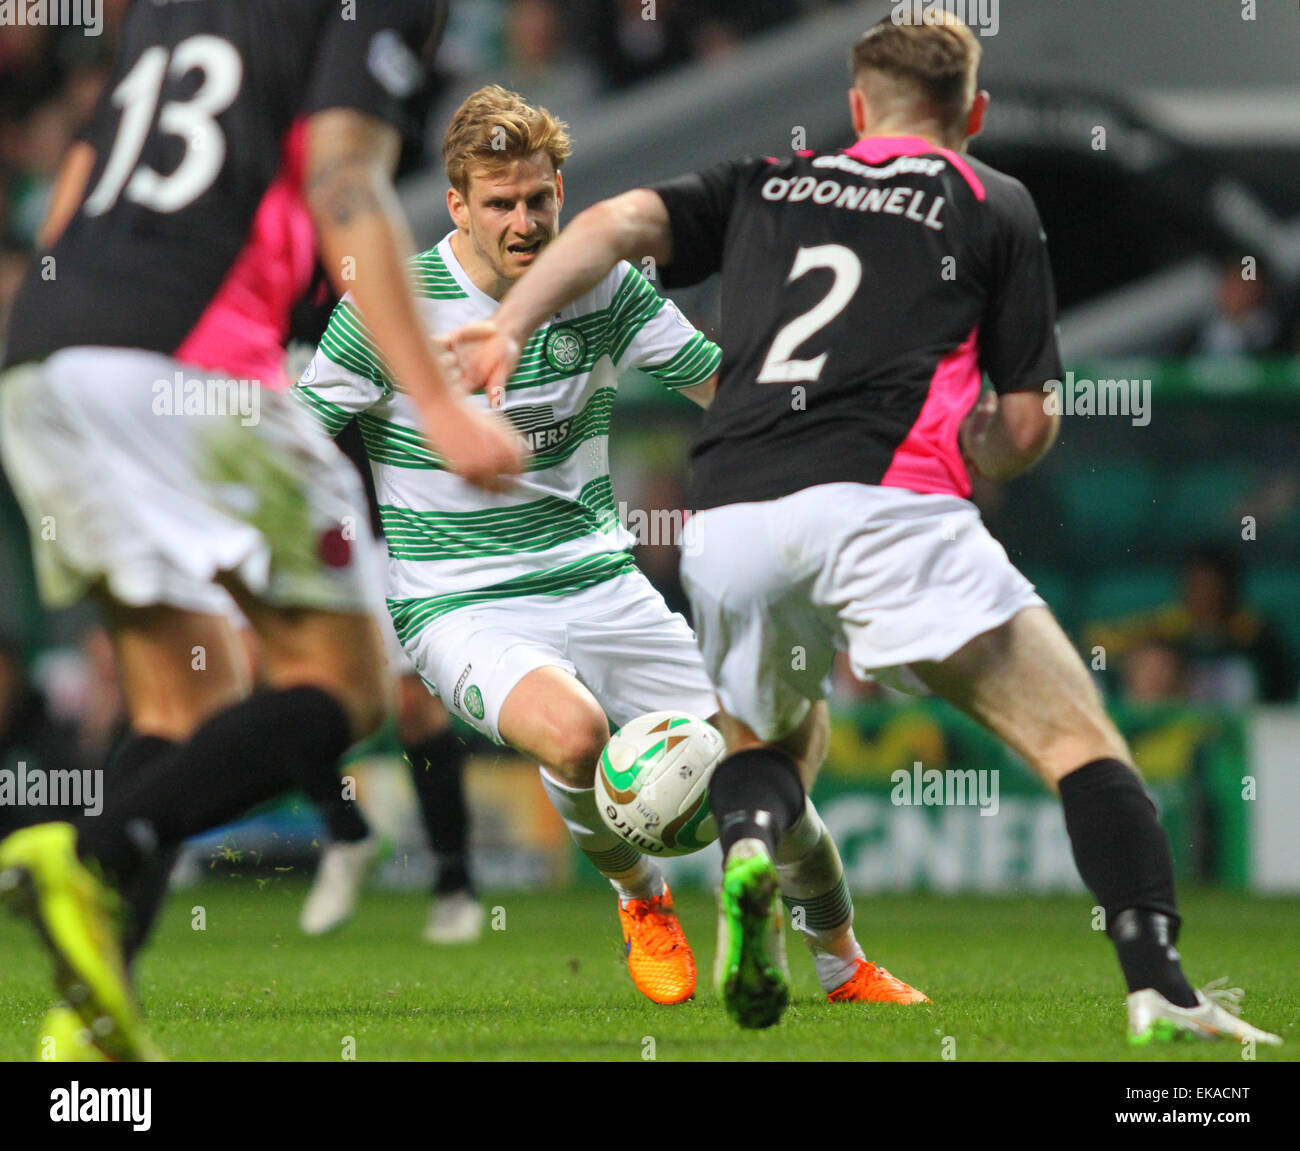 Glasgow, Scotland. 08th Apr, 2015. Scottish Premier League. Celtic versus Partick Thistle. Stuart Armstrong tries - Stock Image